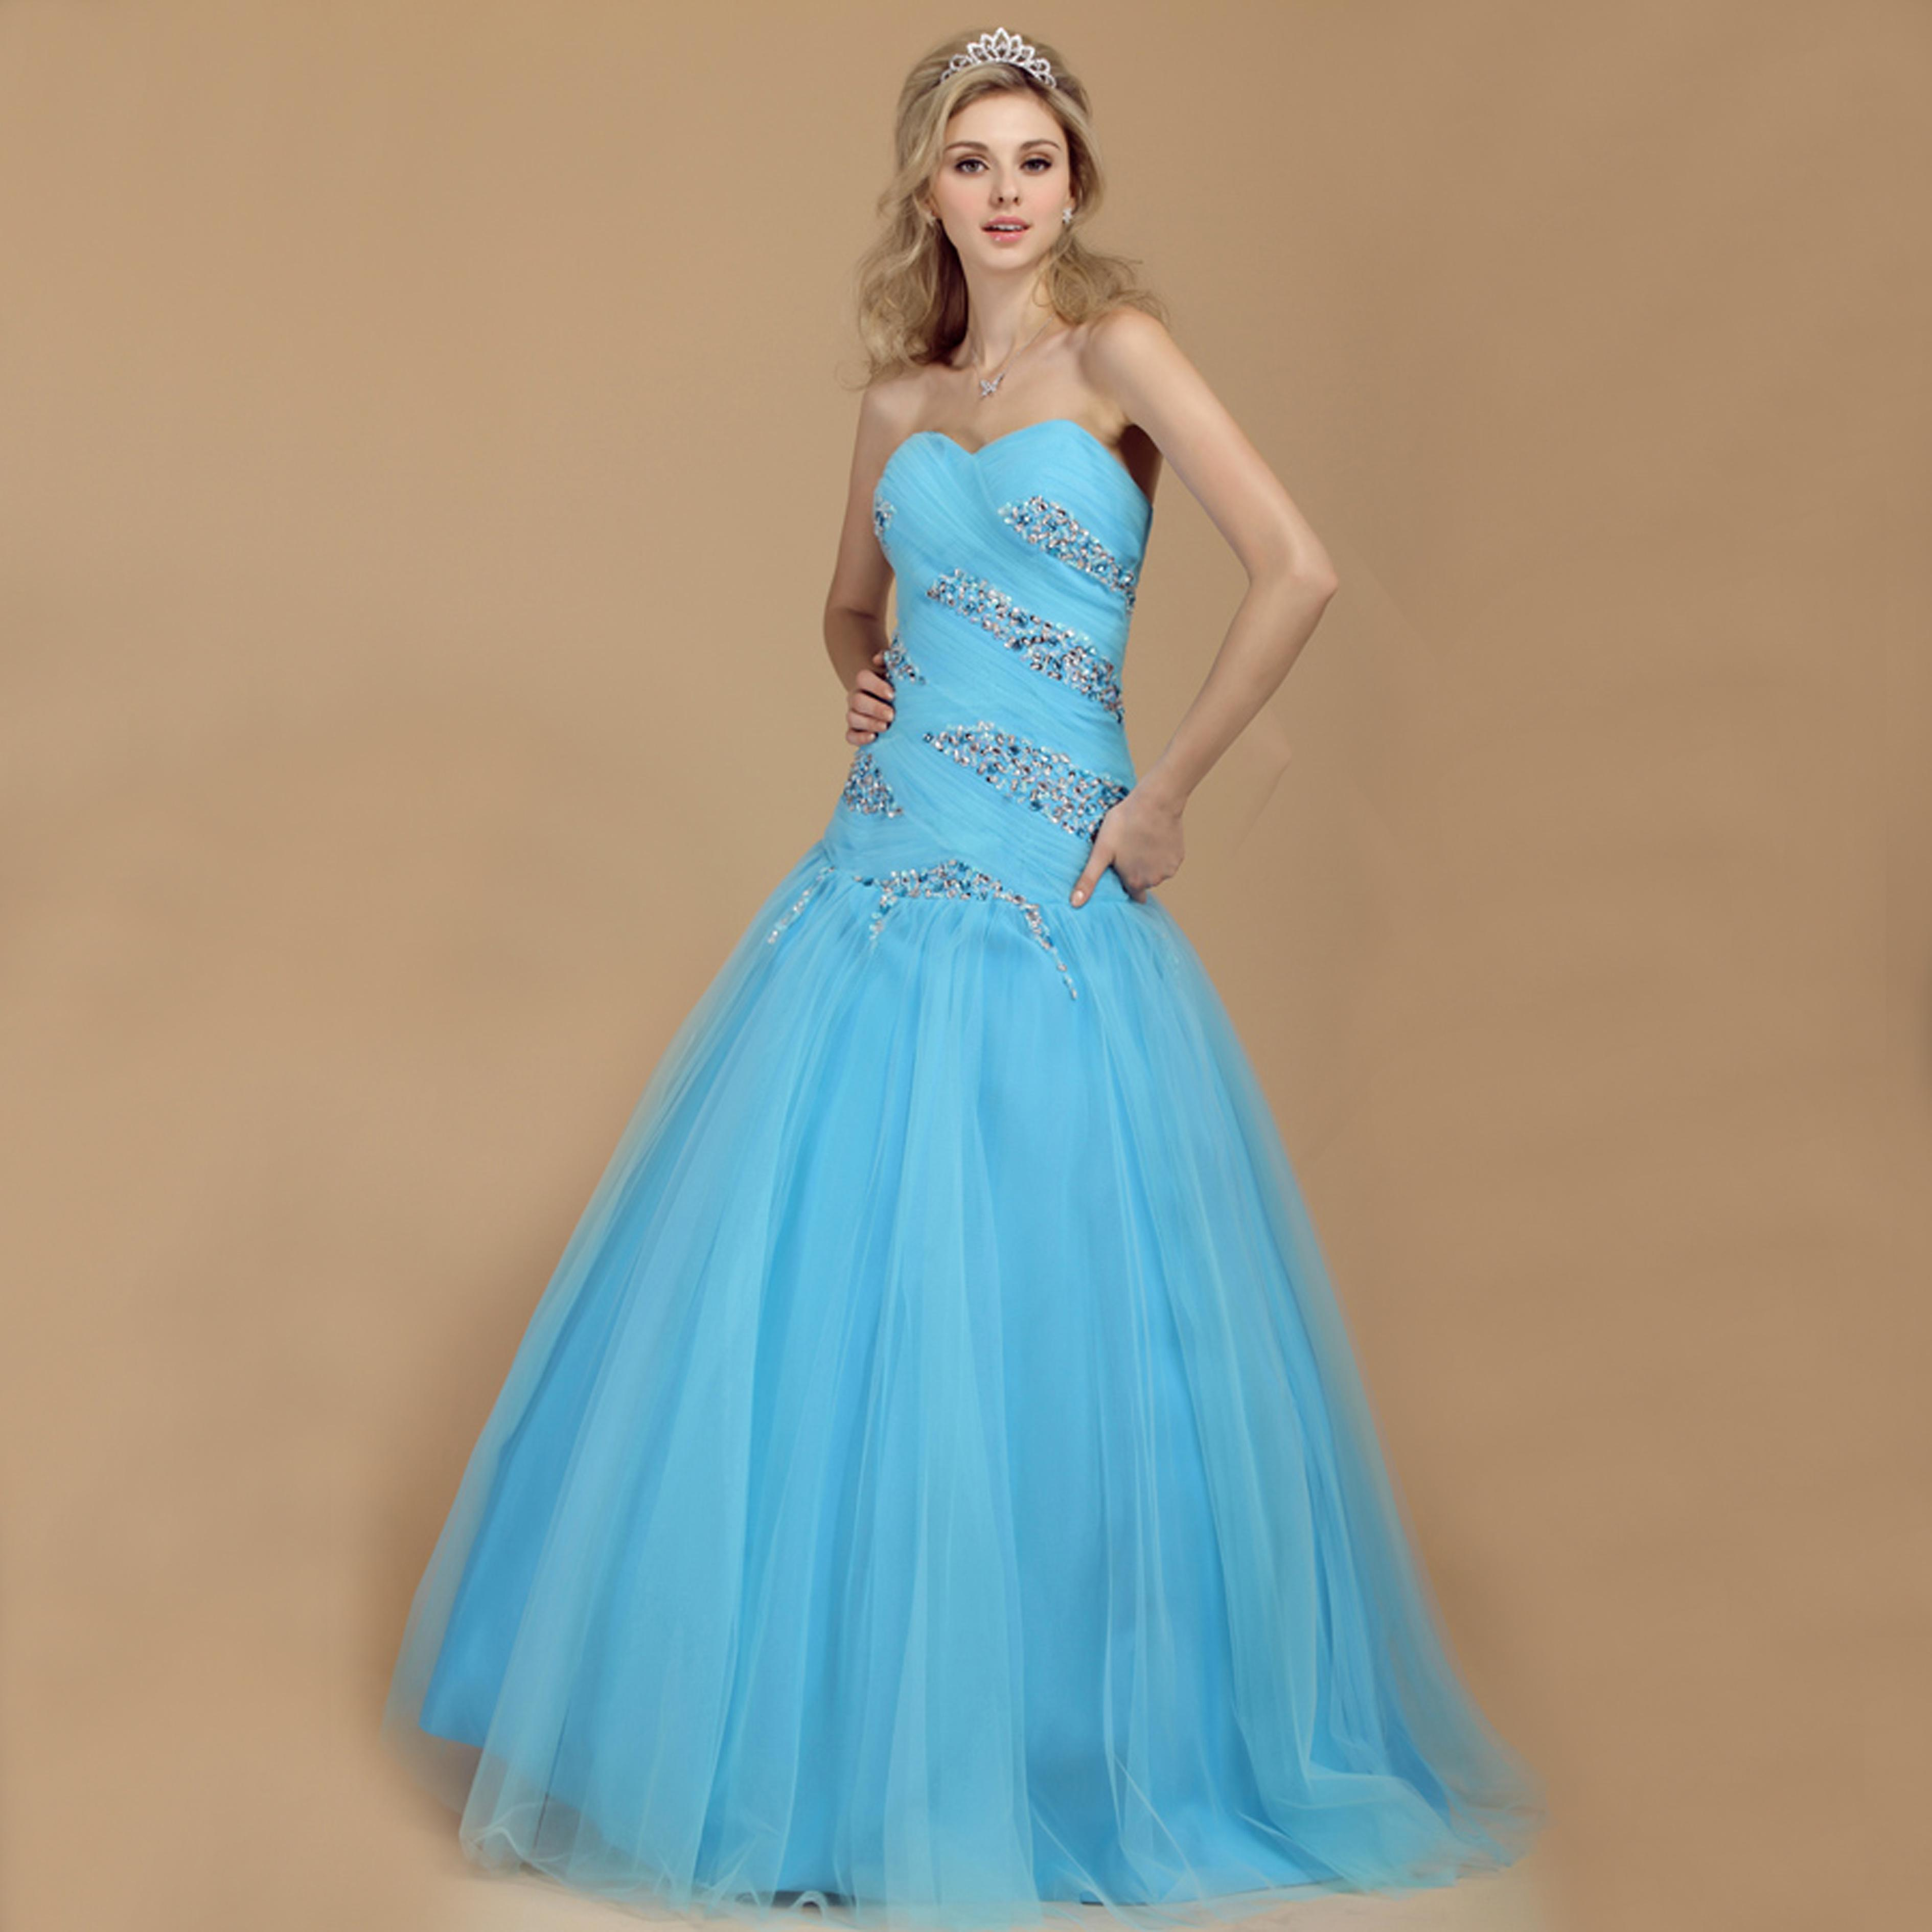 Awesome Prom Dresses Sheffield Image Collection - Wedding Dress ...